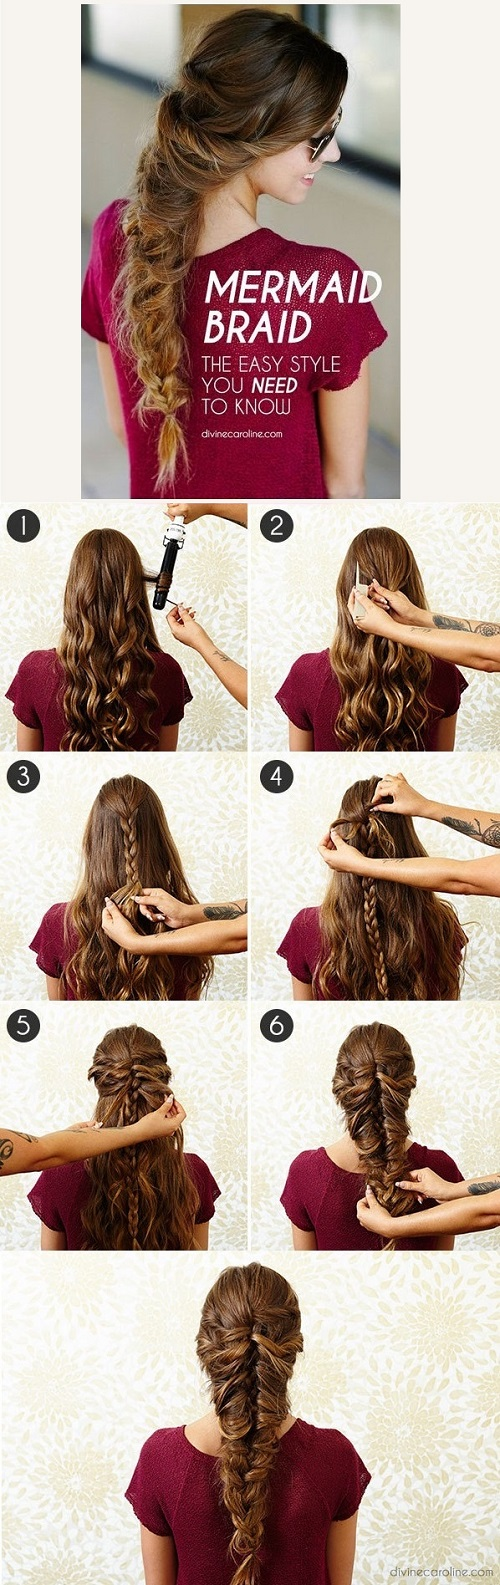 17 hair tutorials you can totally diy diy mermaid braid for long hair solutioingenieria Image collections